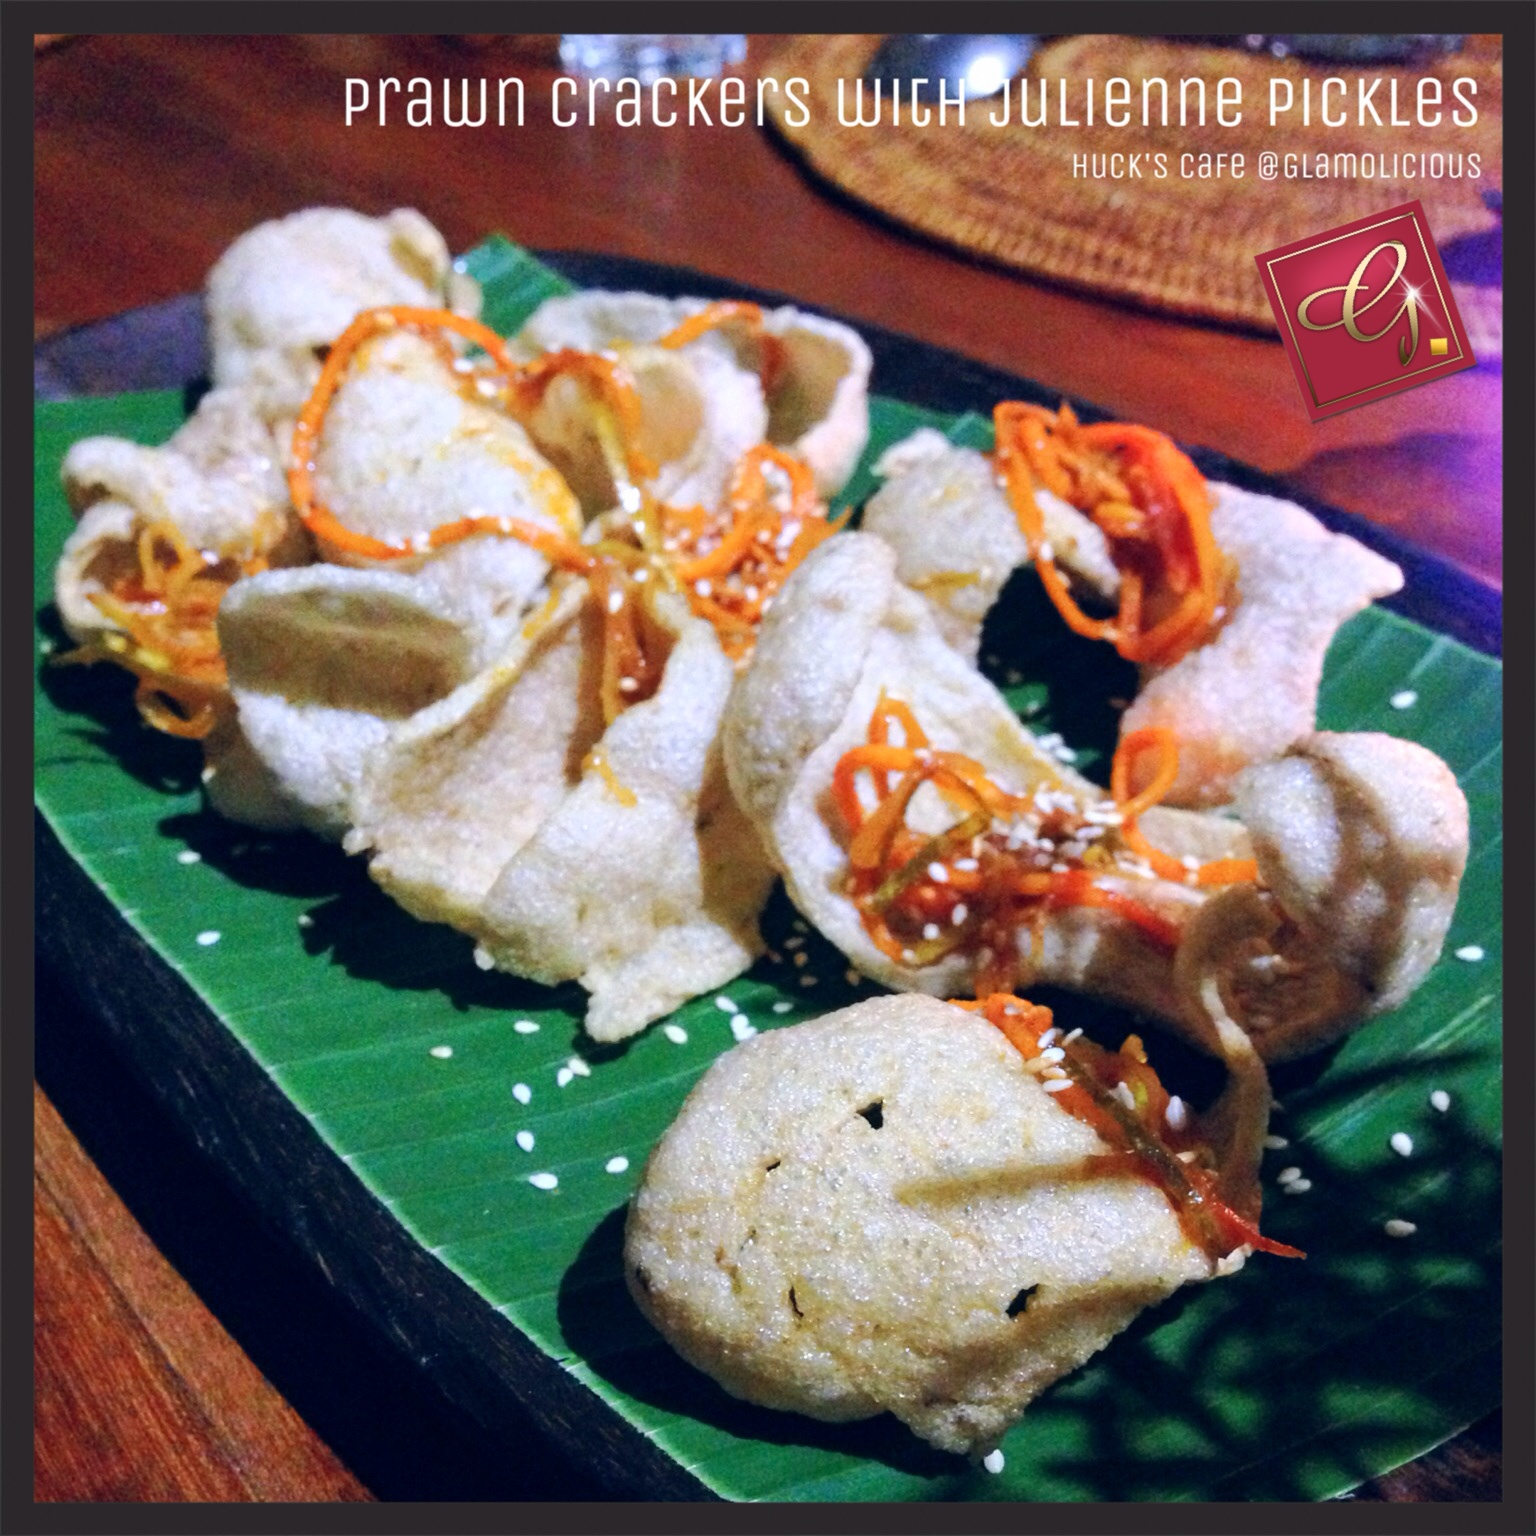 Prawn Crackers with Julienne Pickles by Huck's Cafe